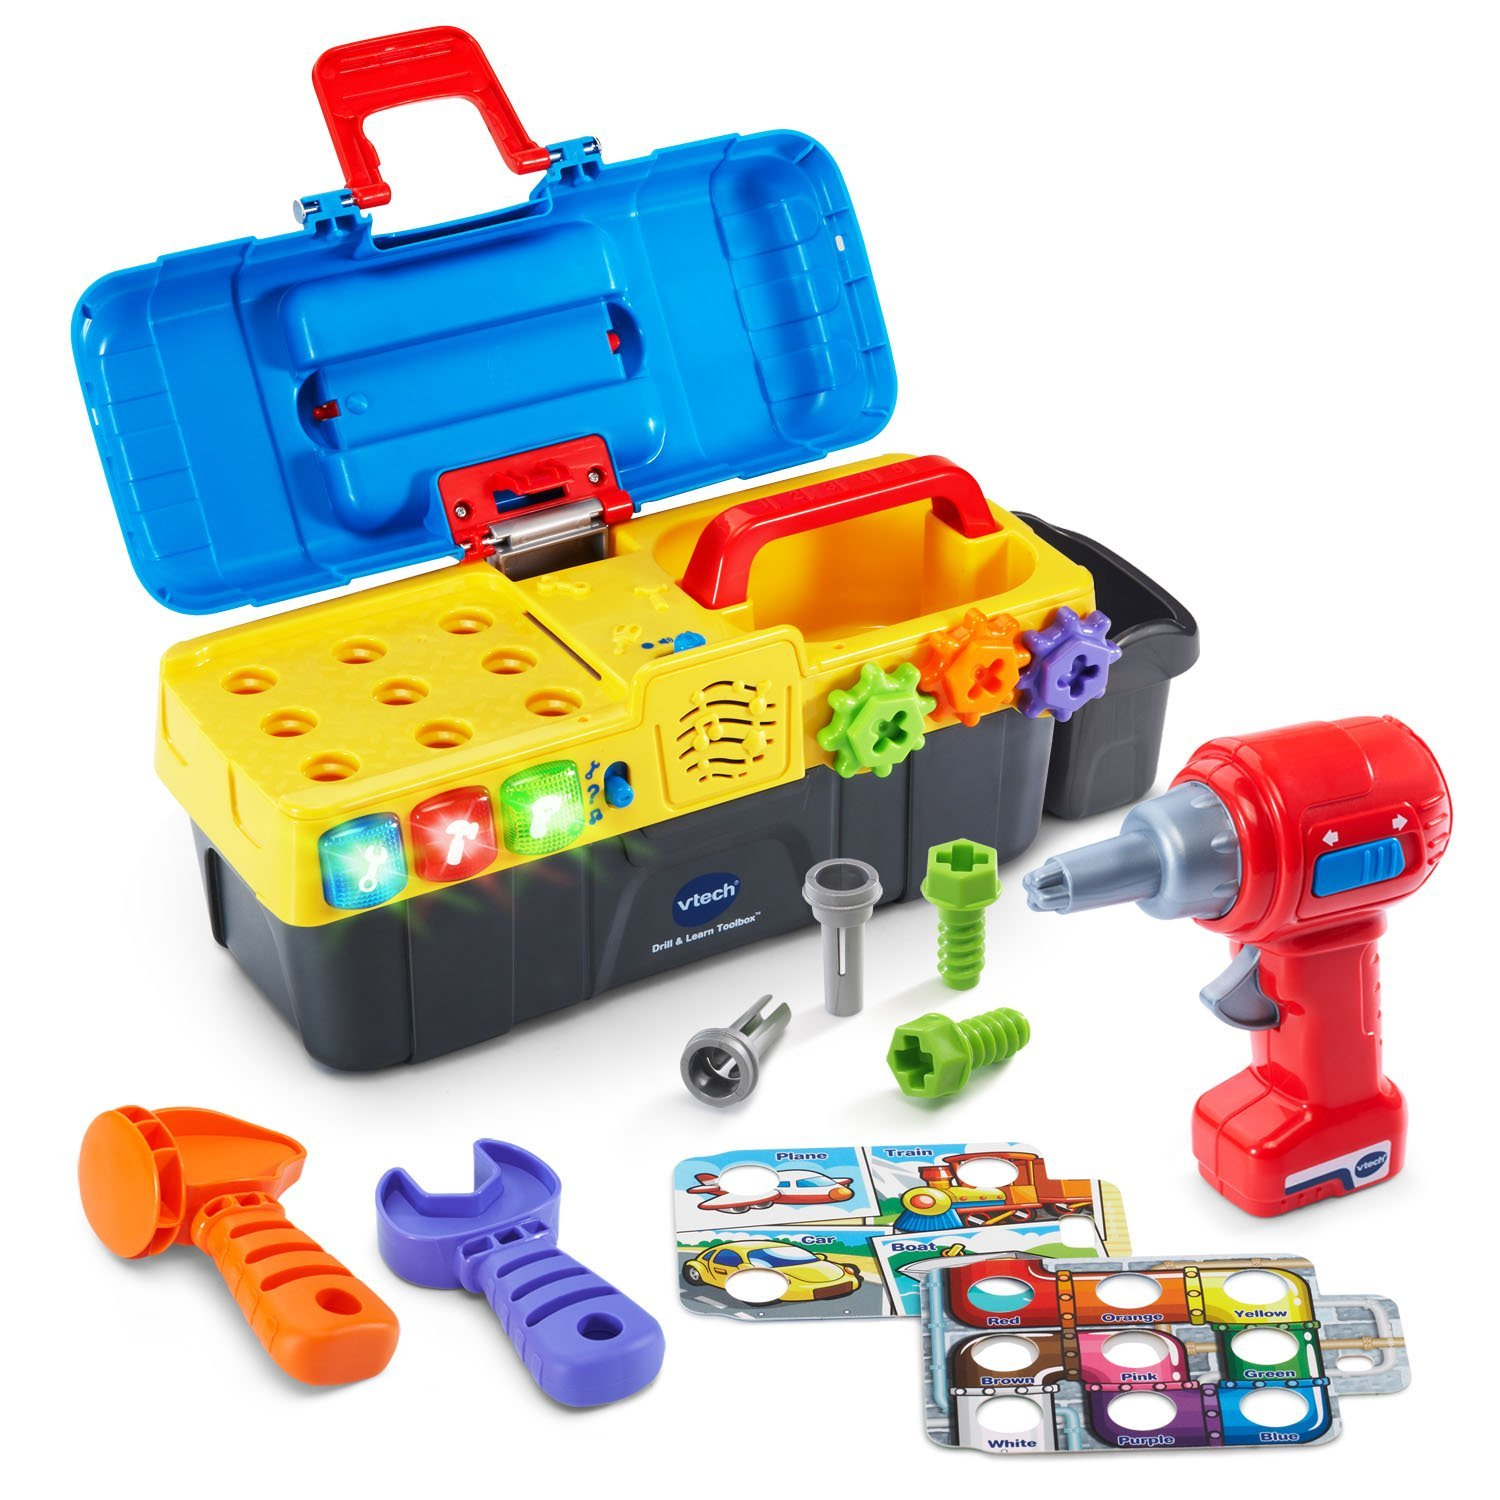 VTech Drill and Learn Toolbox Amazon Exclusive 80-178260